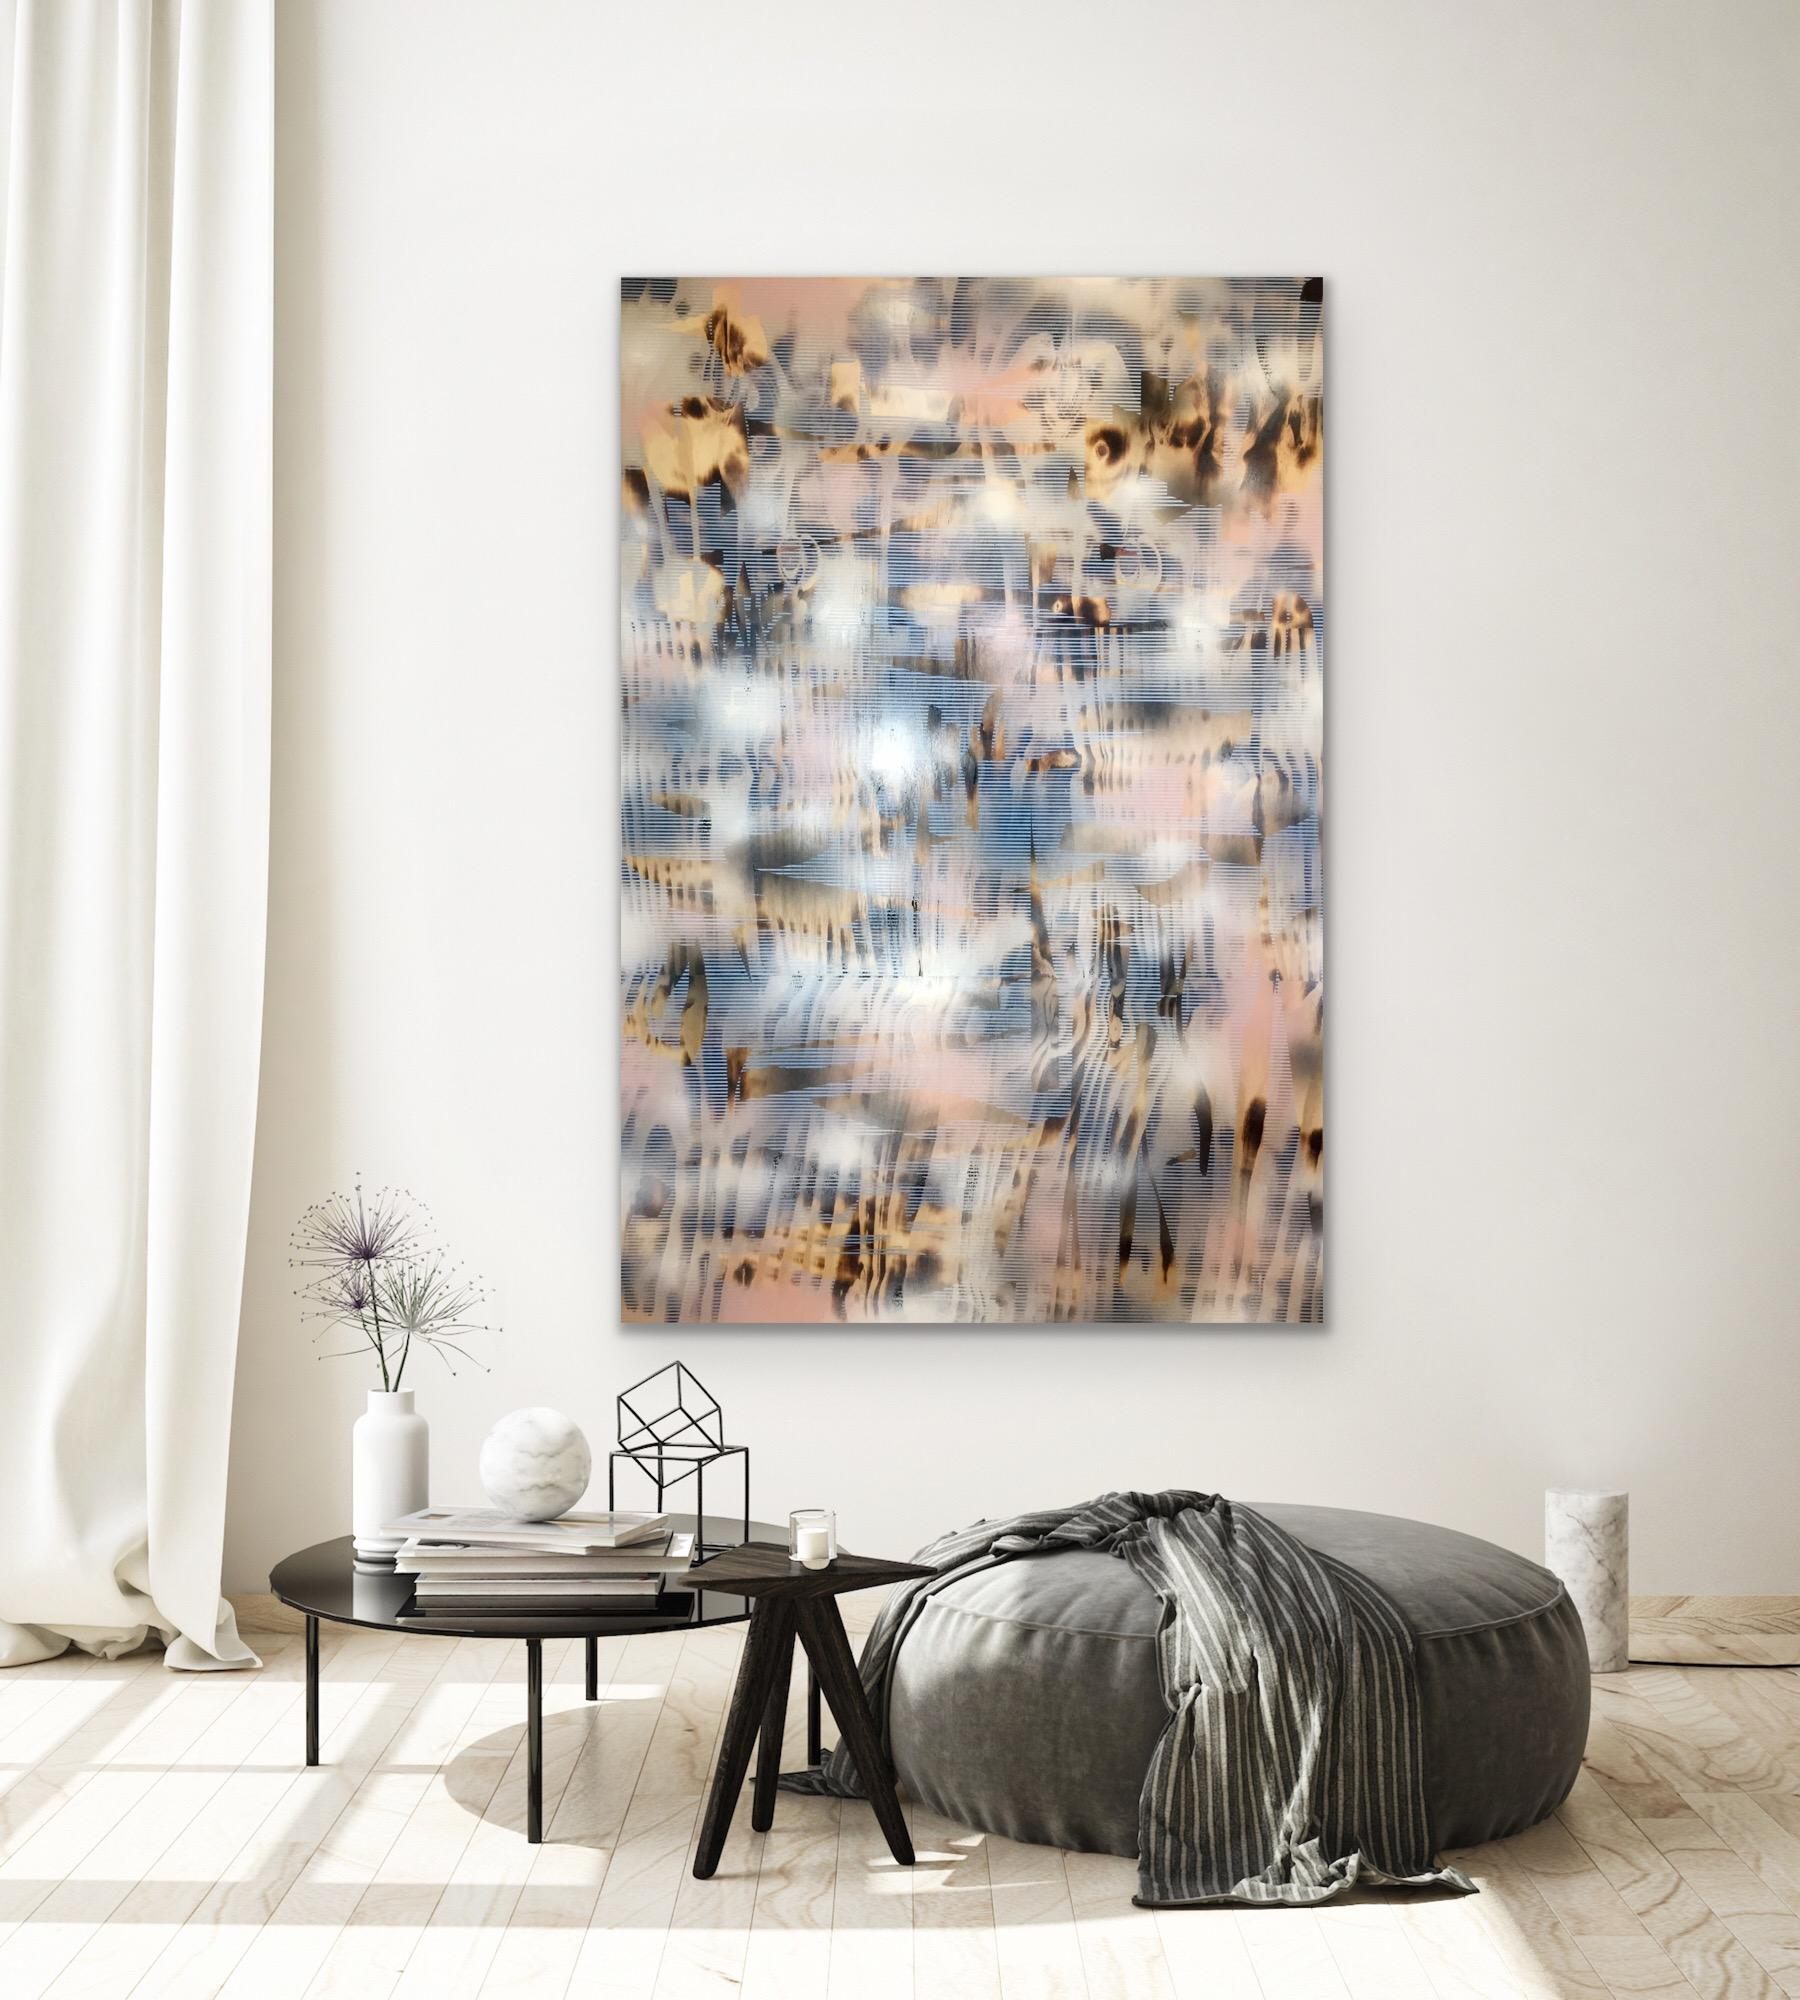 Turbulence 11 (tan off-white patterns pale pink iridescent brown wood abstract)